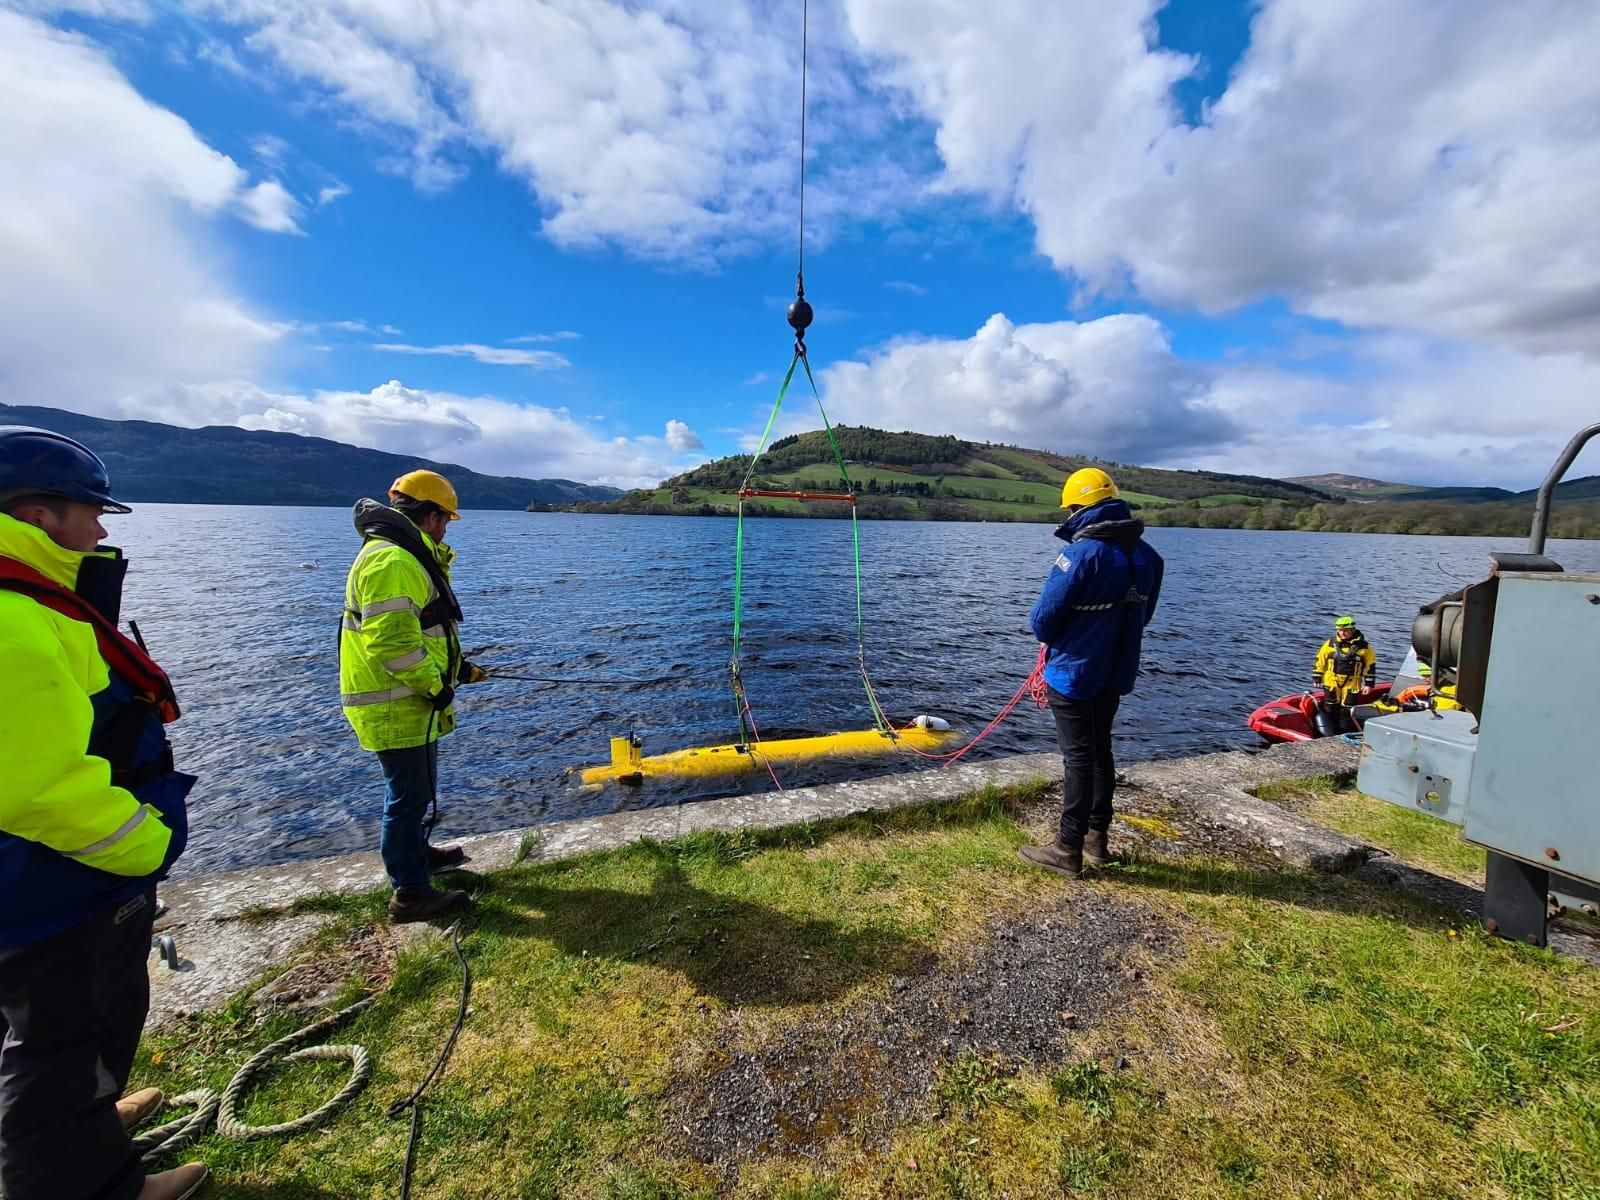 A2KUI being winched into Loch Ness on a sunny day